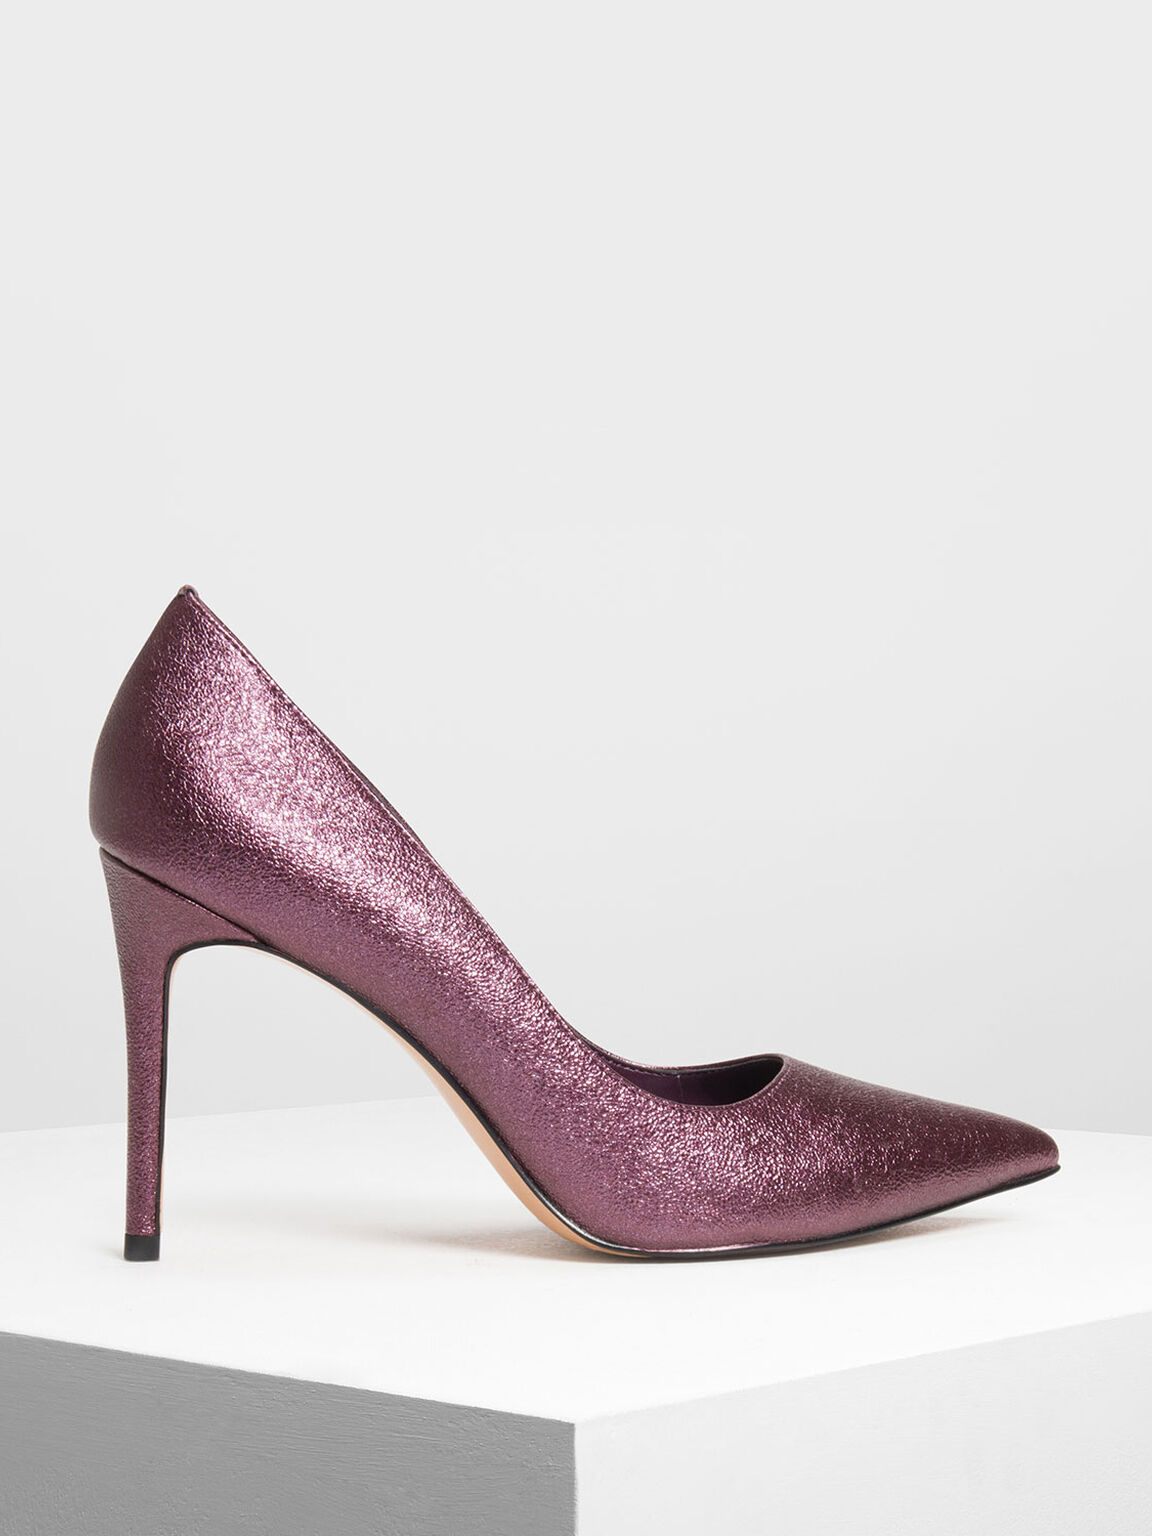 Classic Pointed Toe Pumps, Purple, hi-res